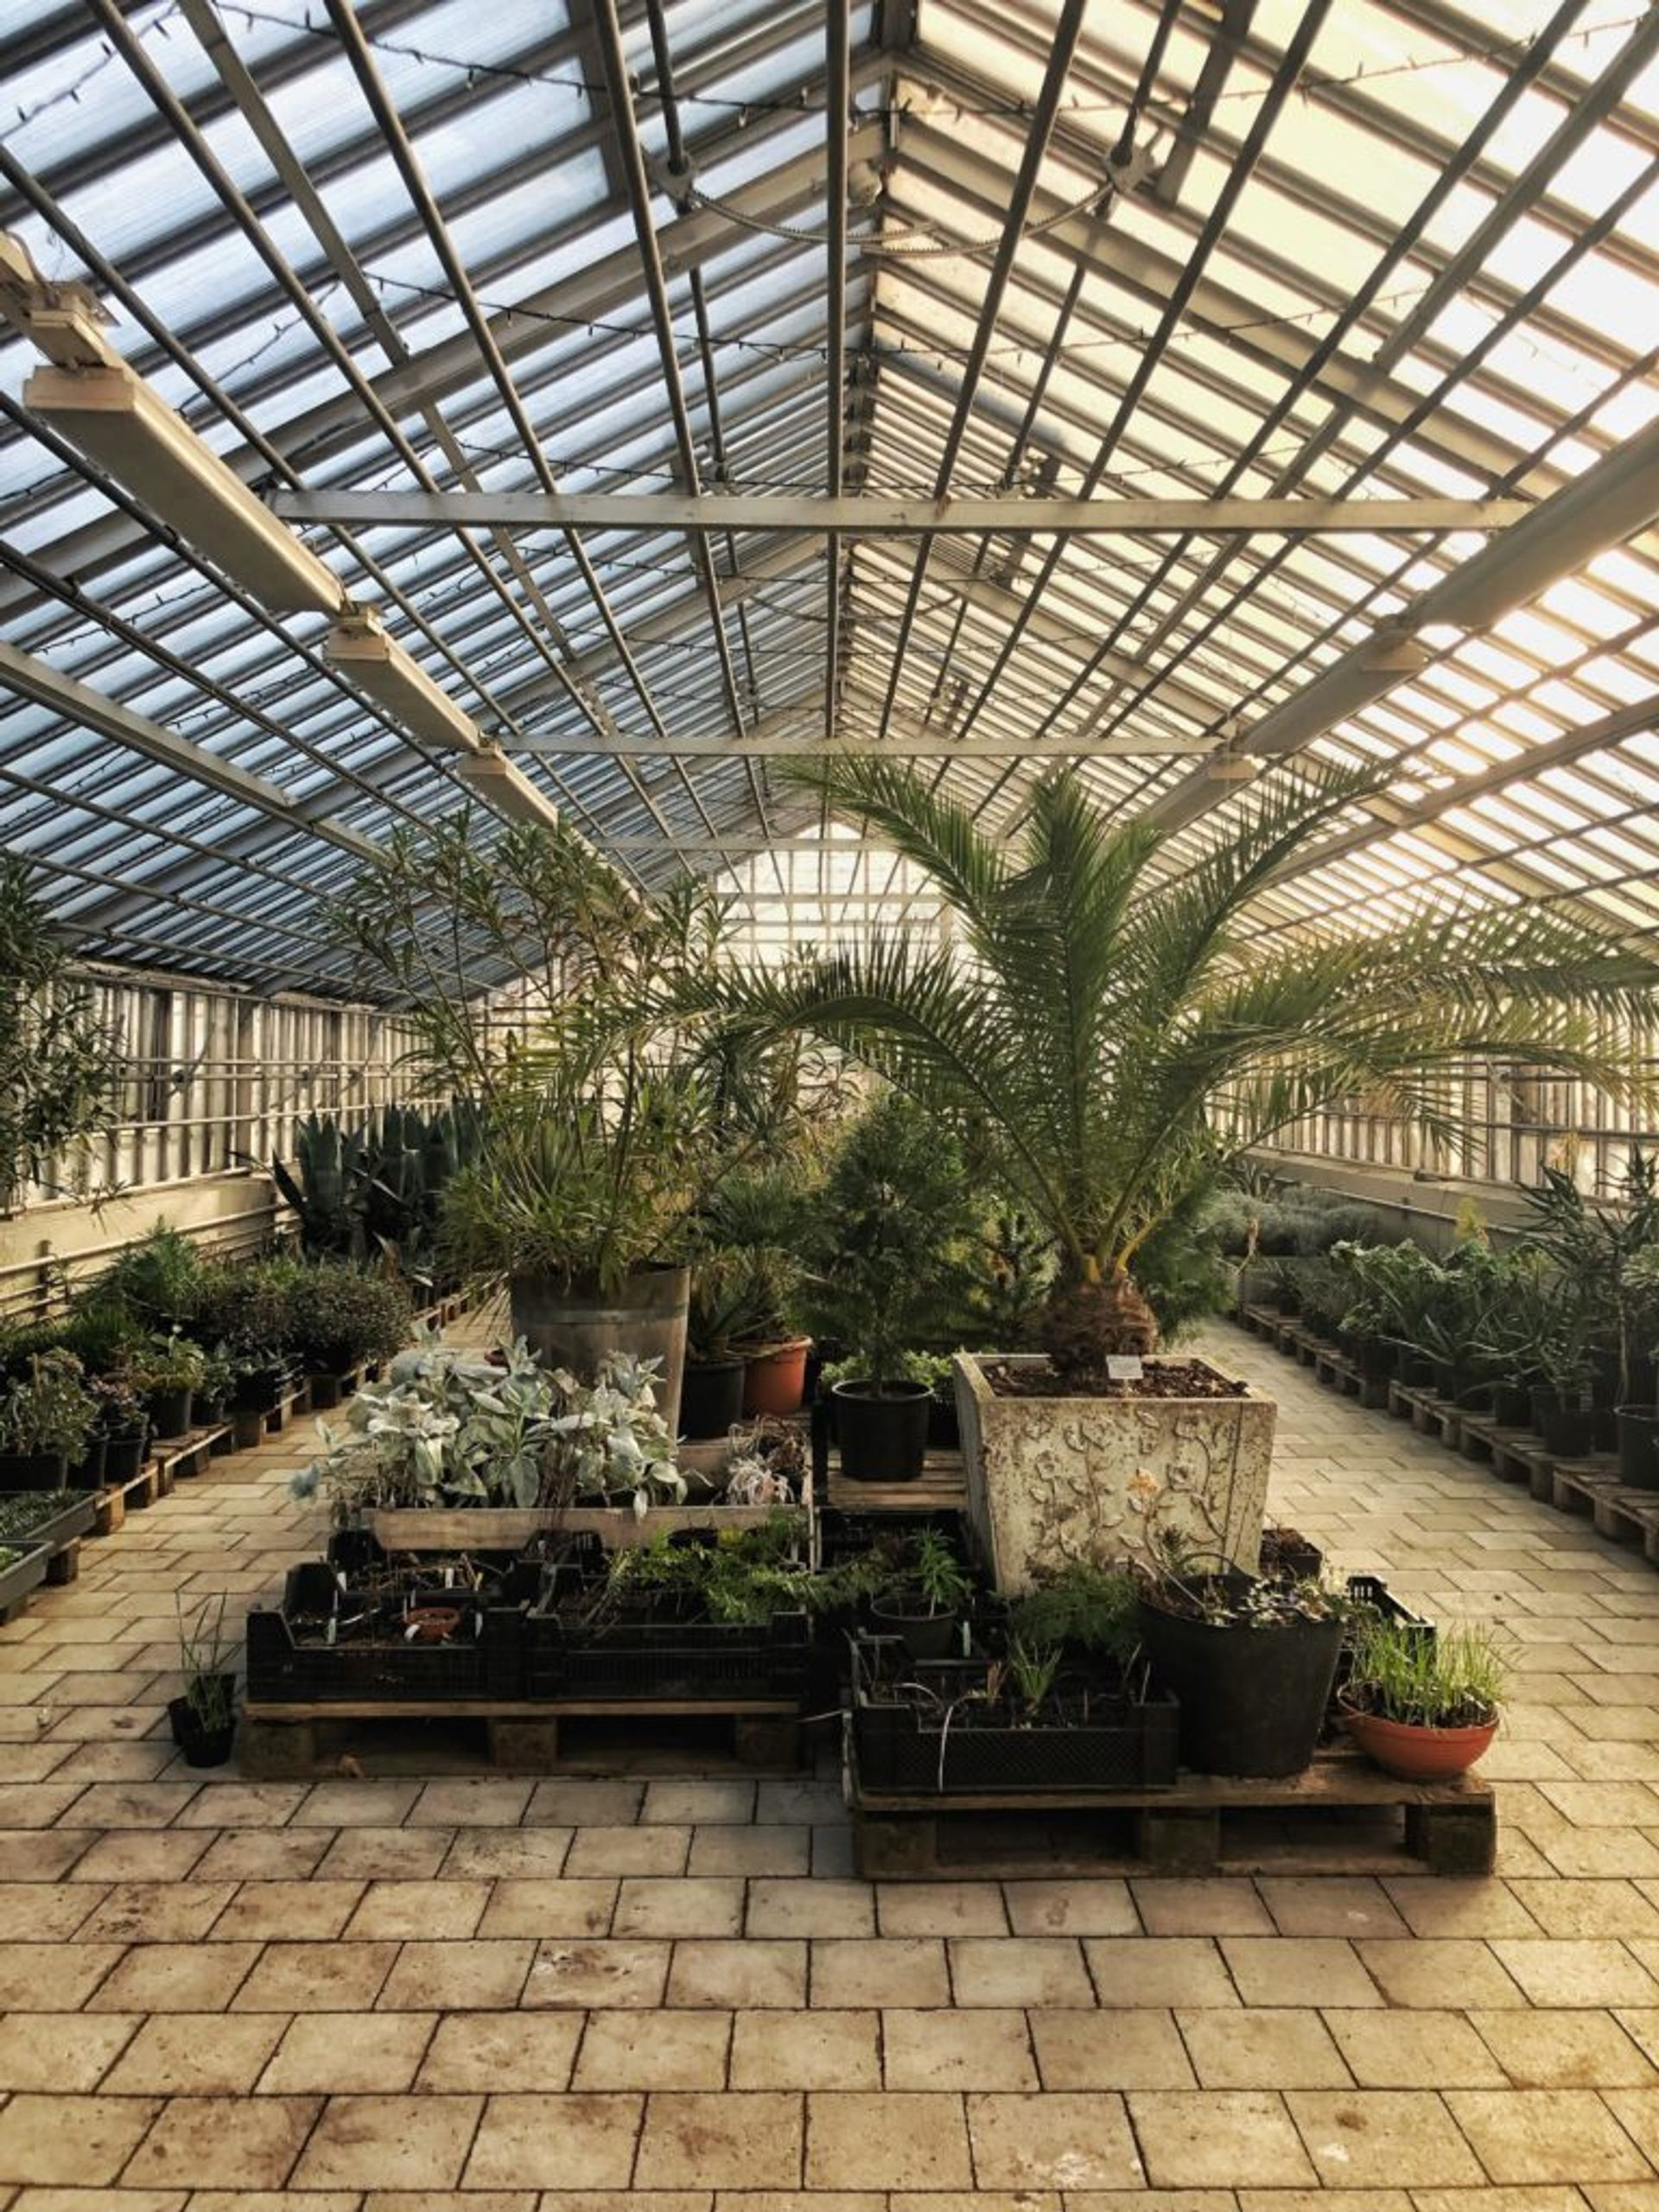 Tropical plants inside a large greenhouse.